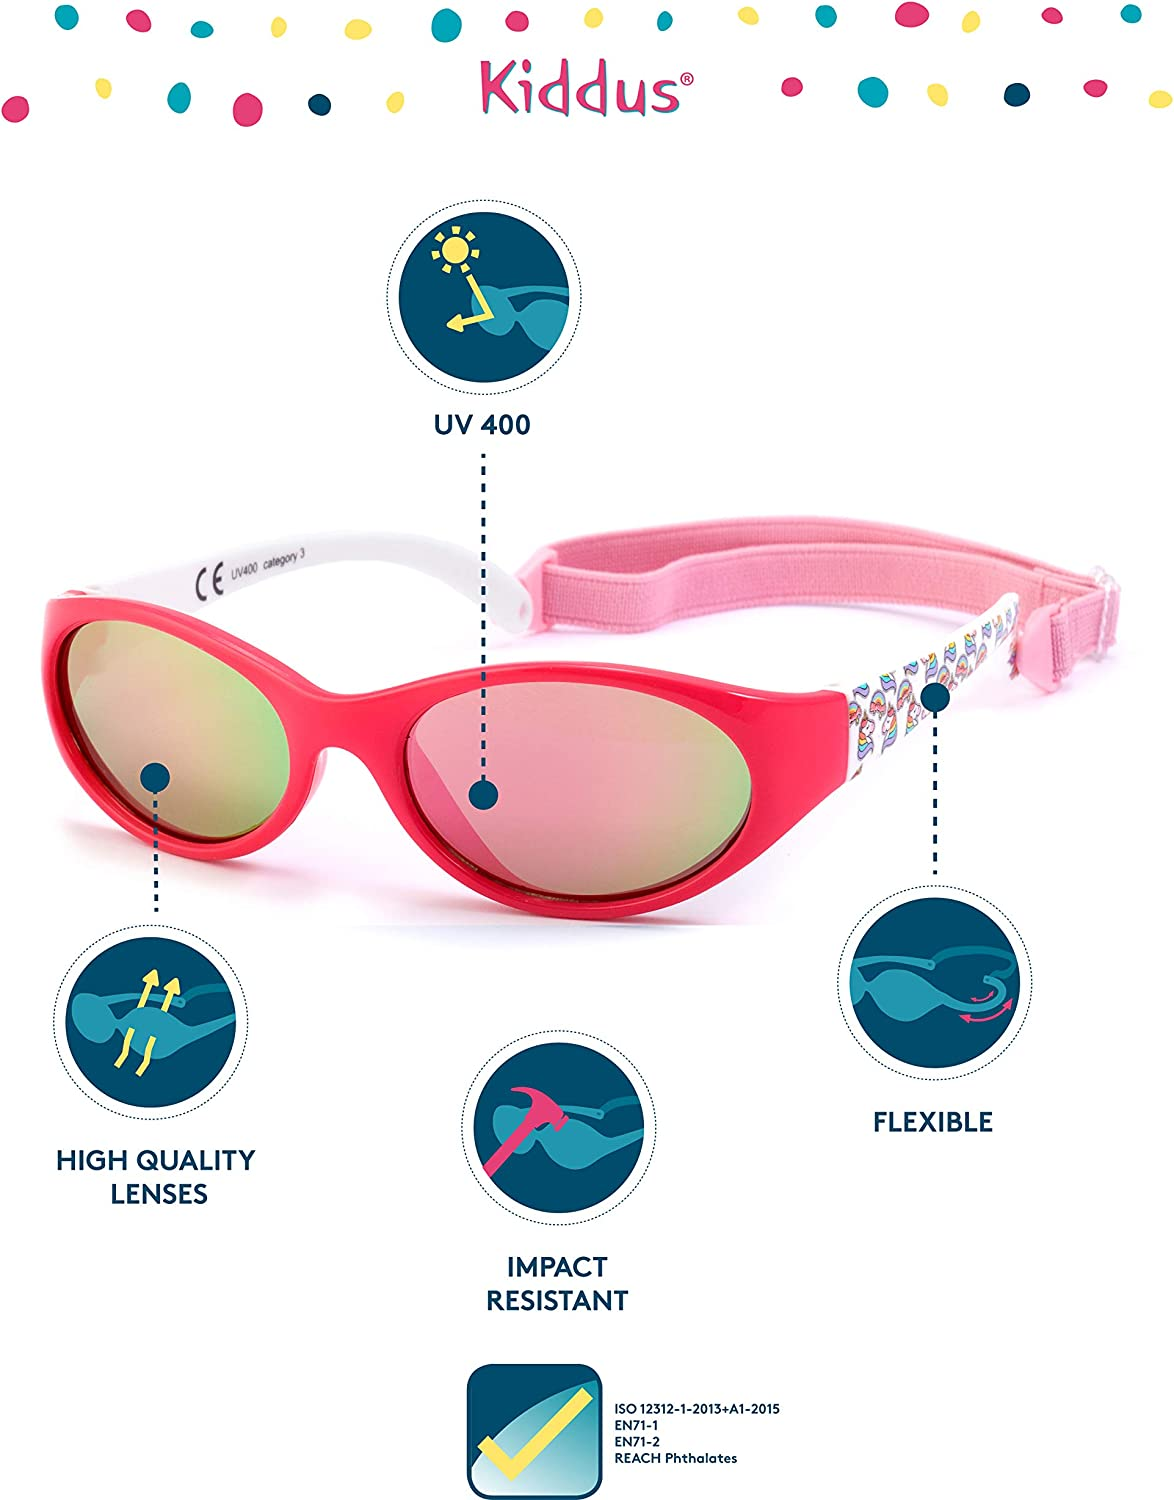 Useful Gift Adjustable and Detachable Band Impact Resistant UV400 Sun Protection Age from 2 to 6 years KIDDUS Kids Comfort Sunglasses Children Girl Boy Flexible and Comfortable